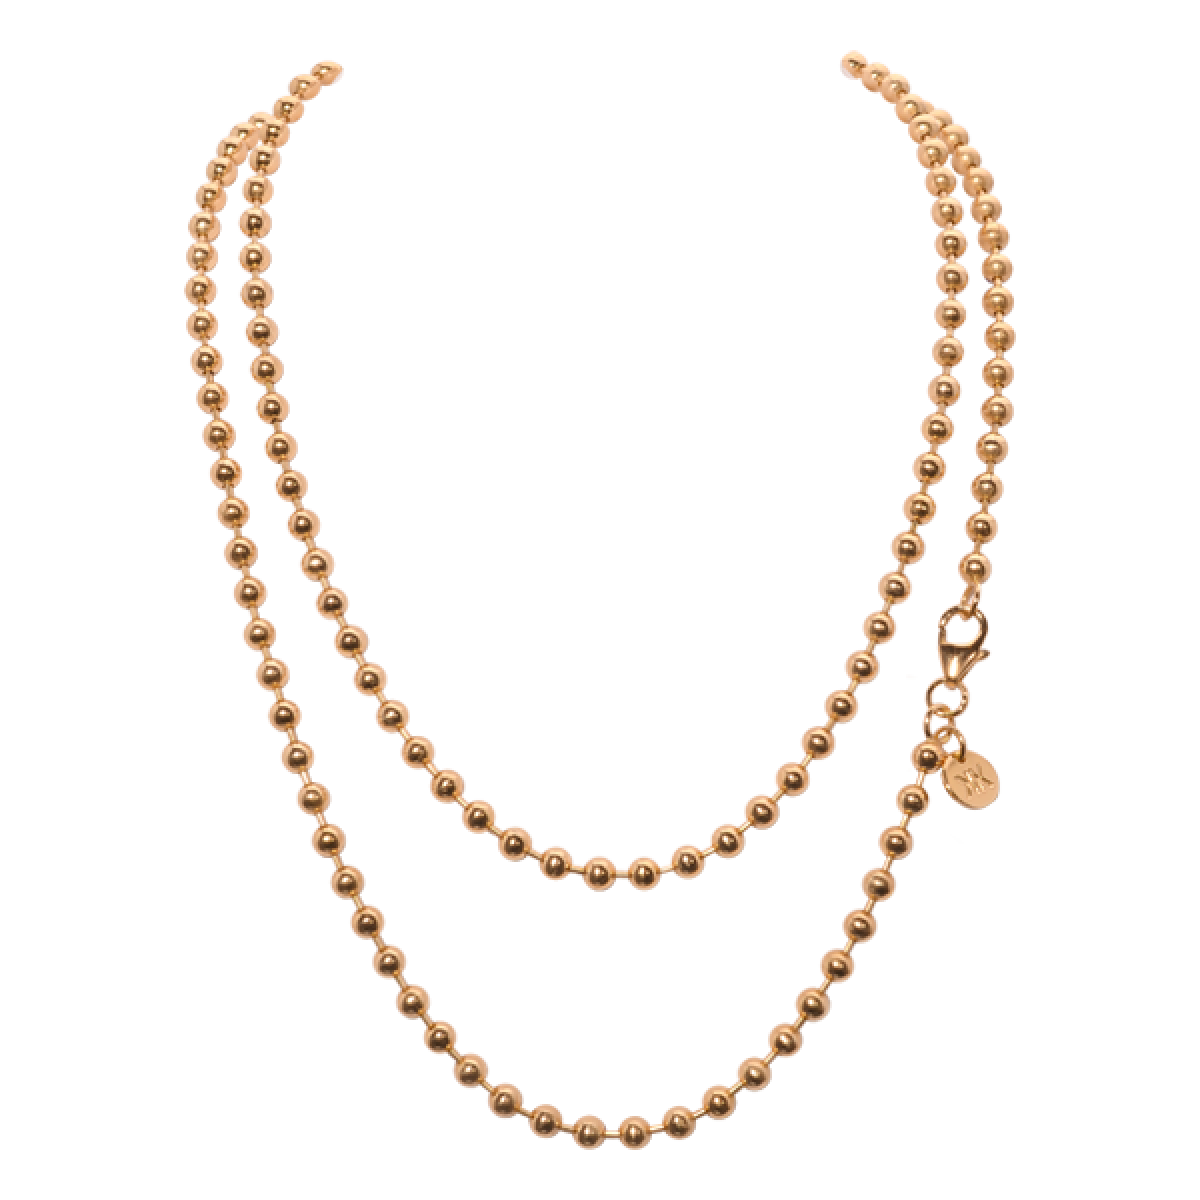 Jewellery Chain PNG image #42715